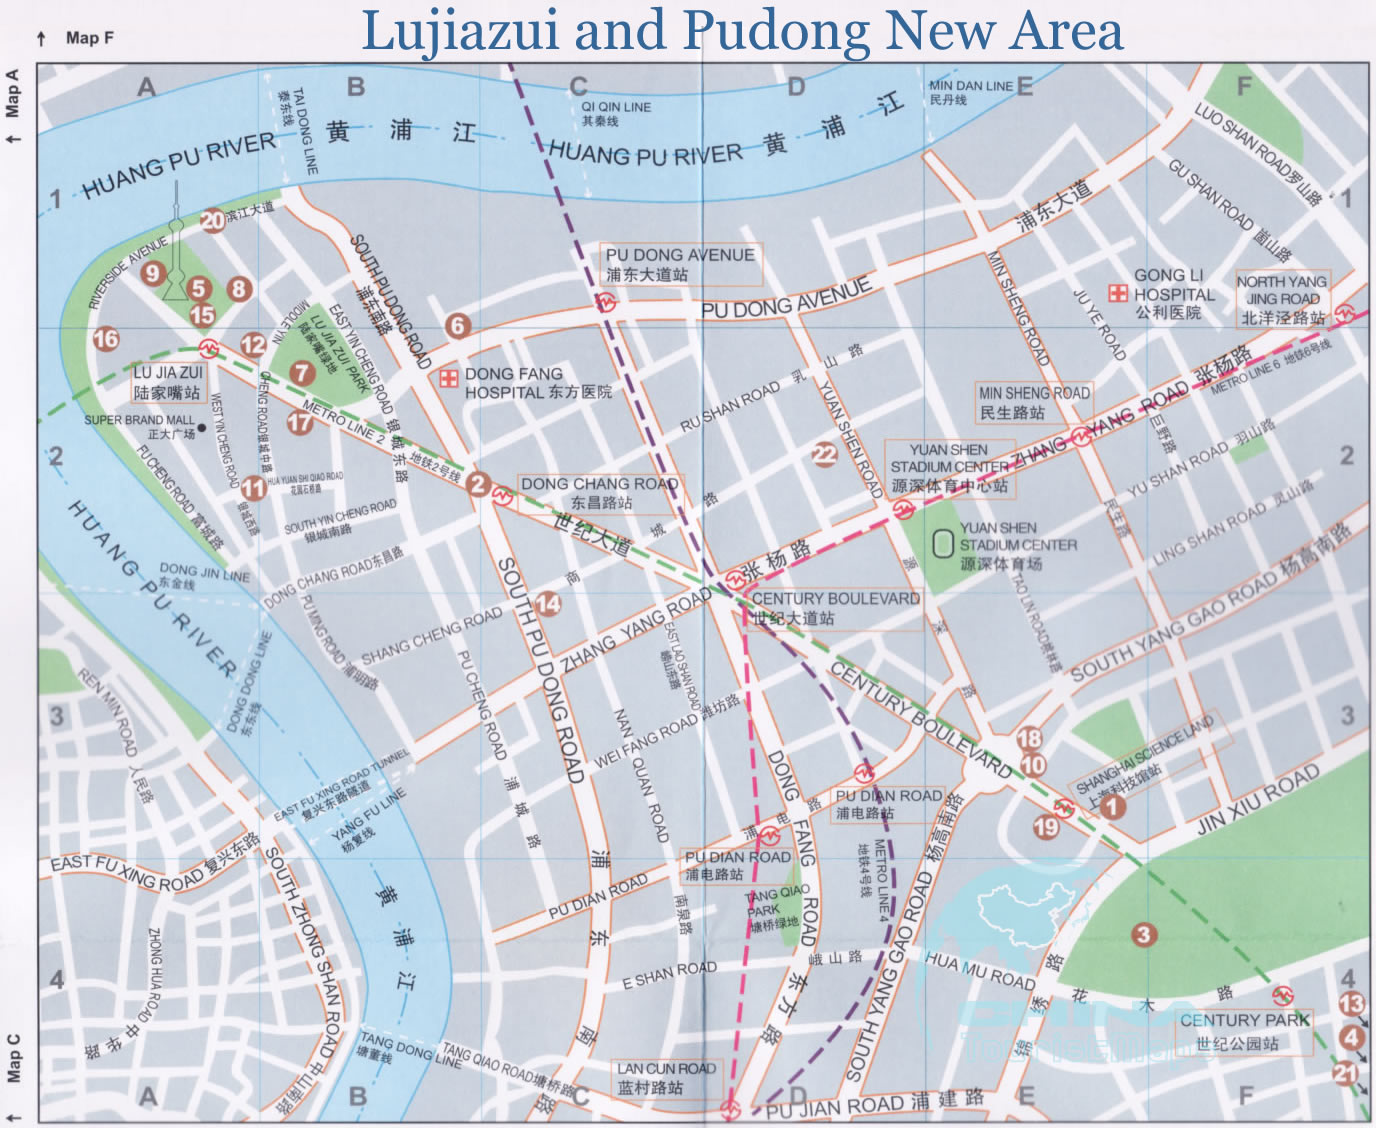 Pudong Shanghai Map Detailed Map of Lujiazui and Pudong New Area